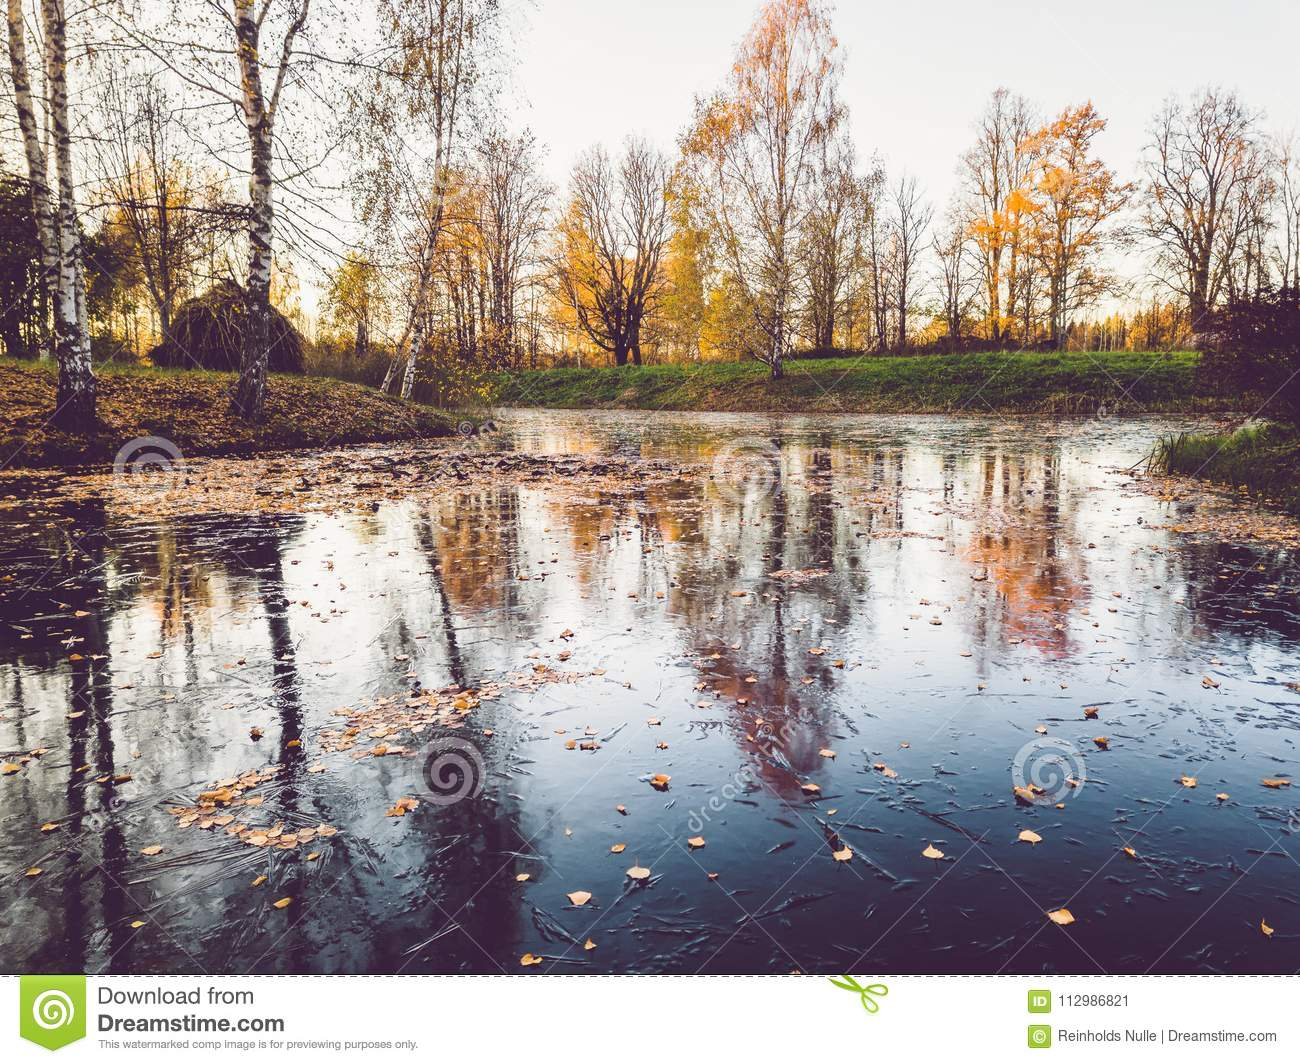 Photo of a Frozen Lake in an Autumn Day - vintage look edit